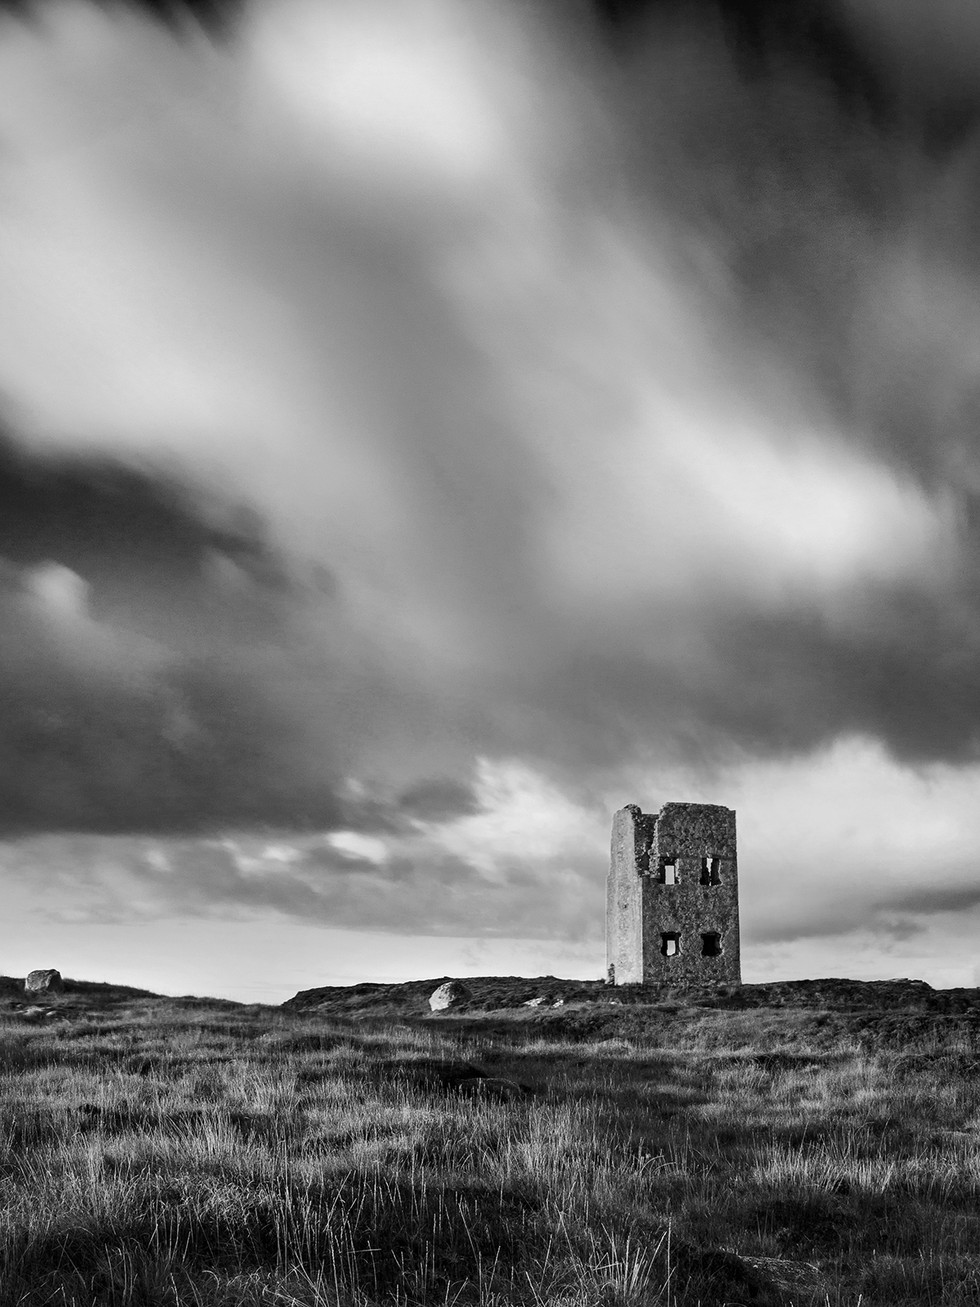 MONO - All Along The Watch Tower by Robert McGlaughlin (8 marks)